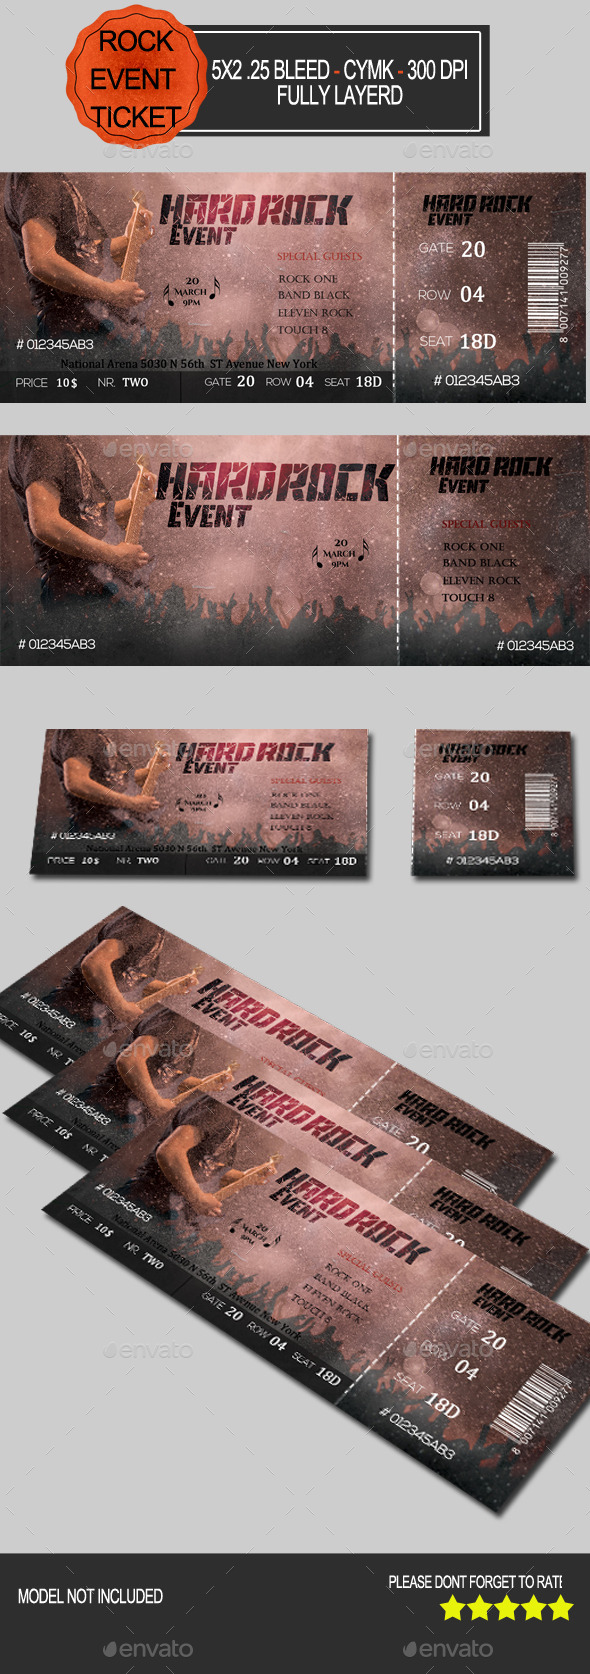 Hard Rock Event Ticket - Miscellaneous Print Templates